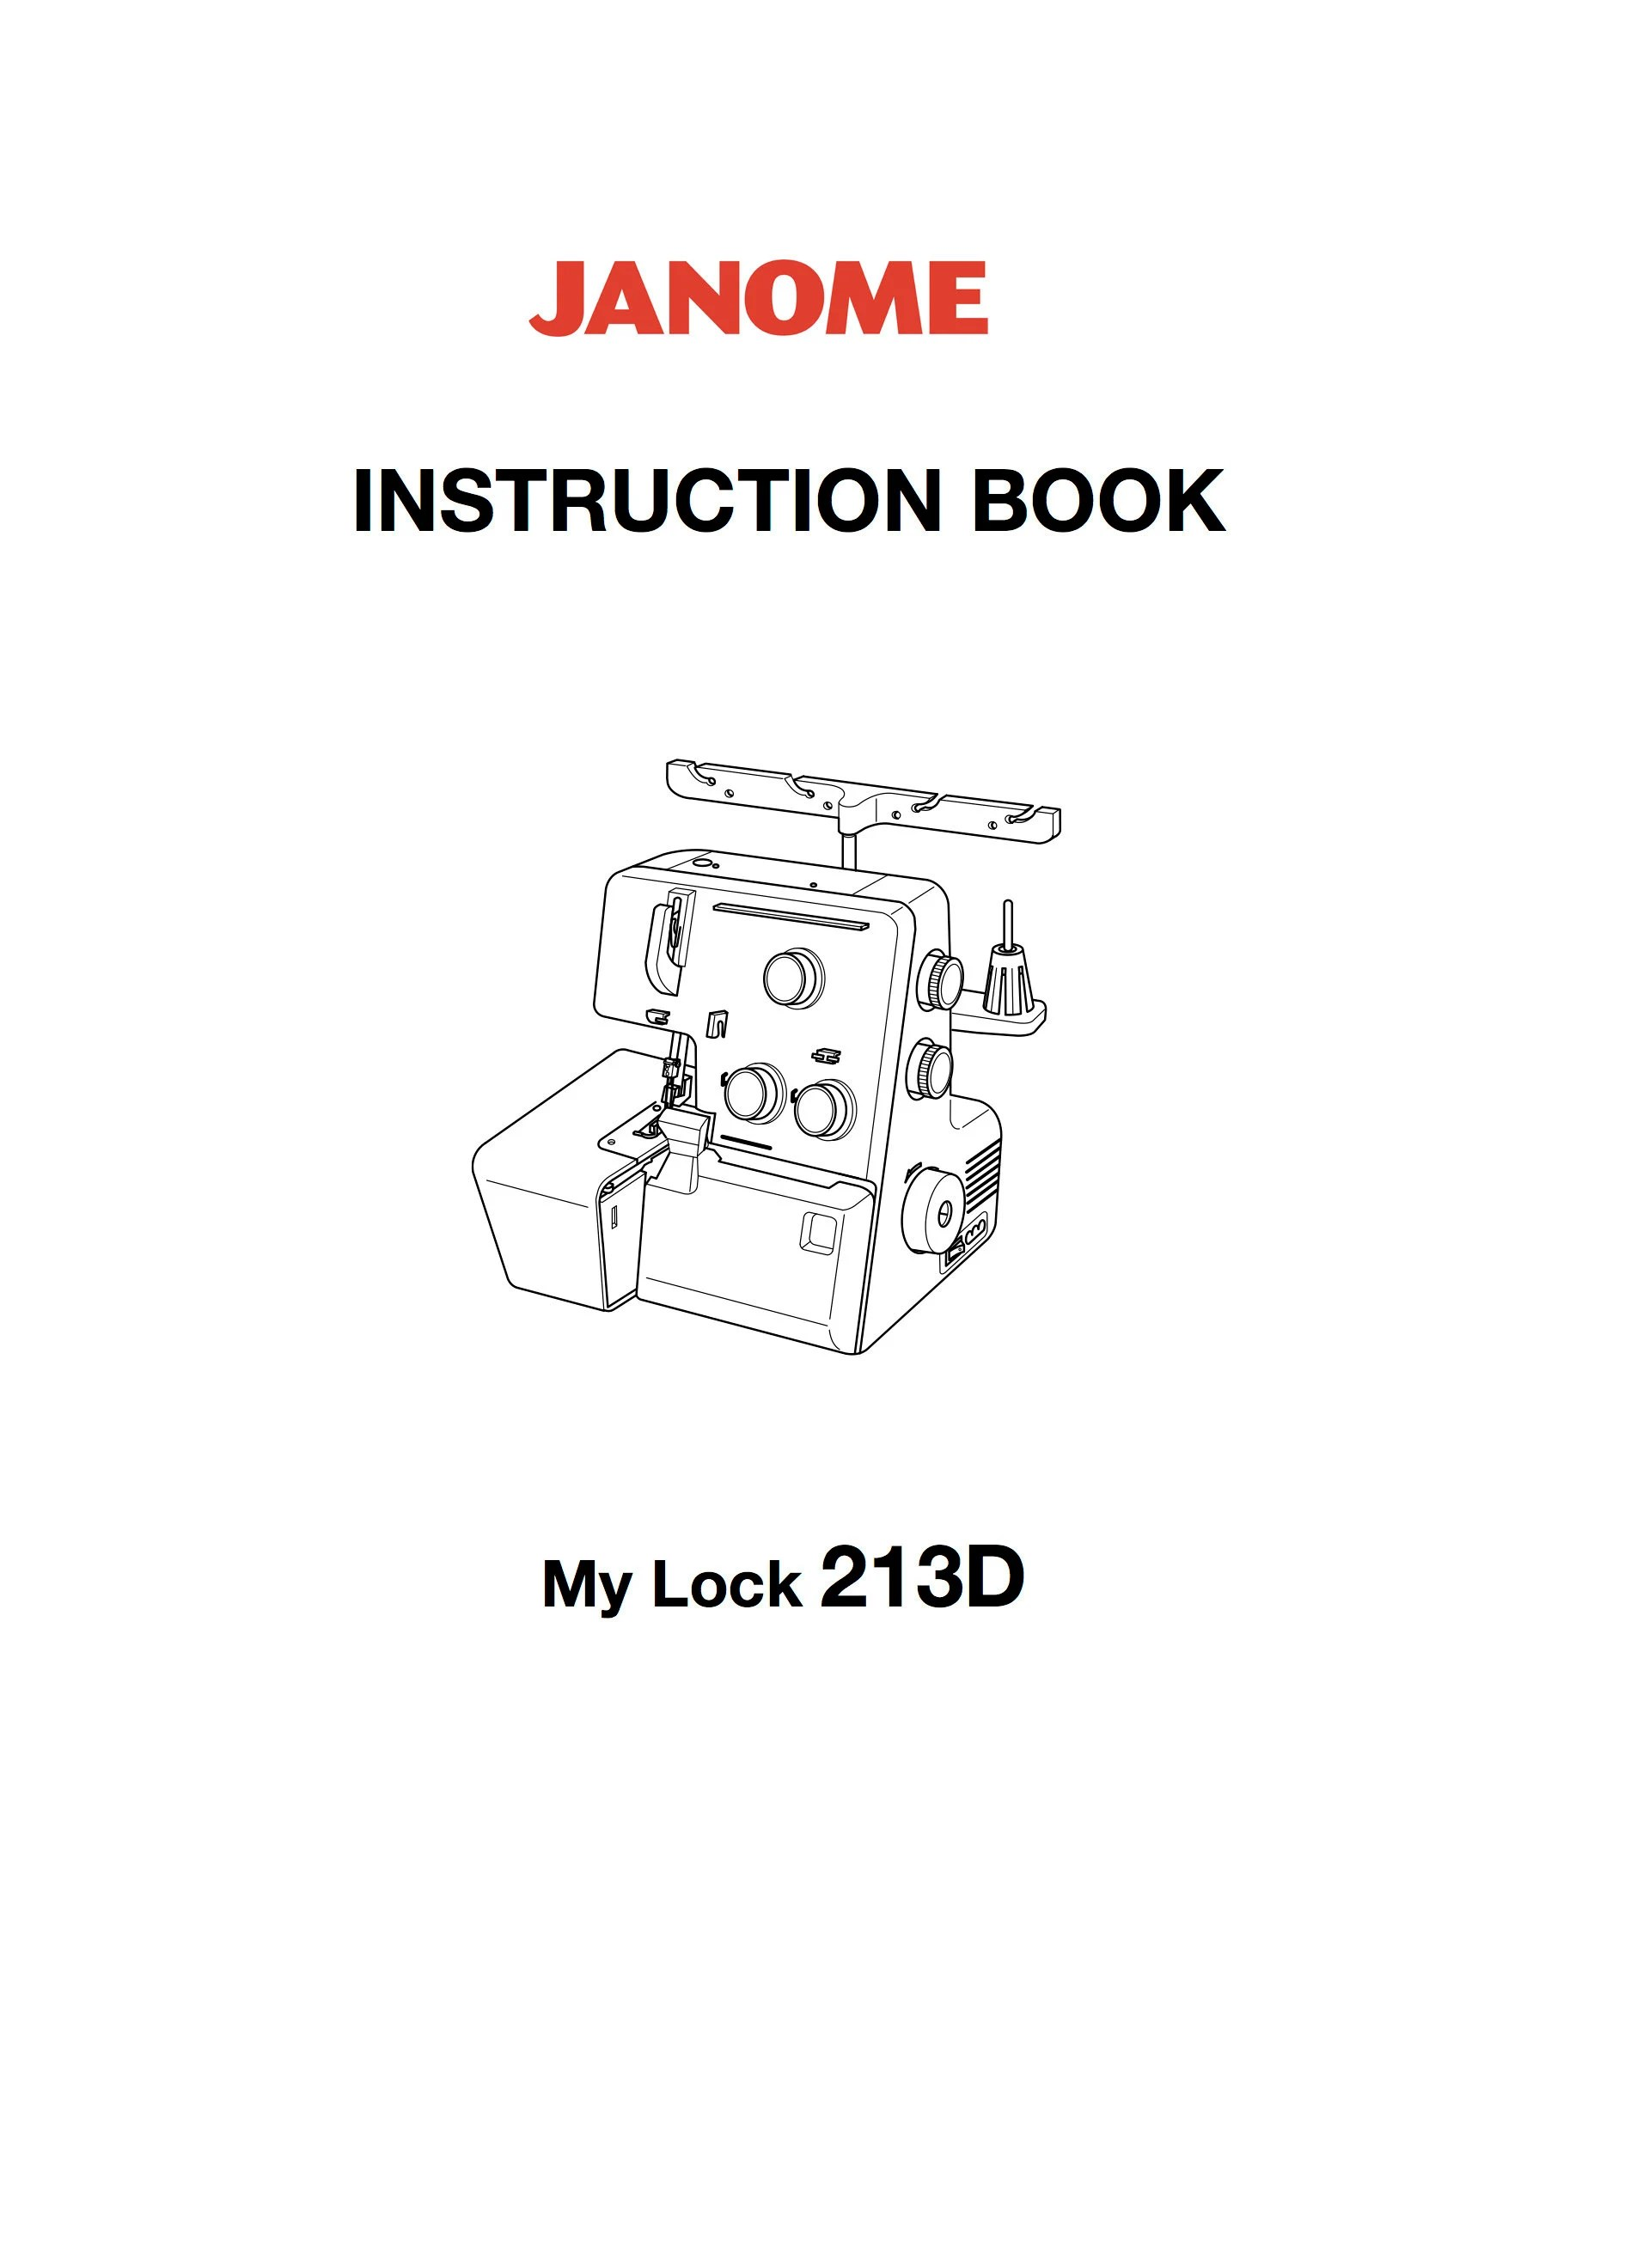 MyLock 213D Instruction and Service / Repair manual Janome